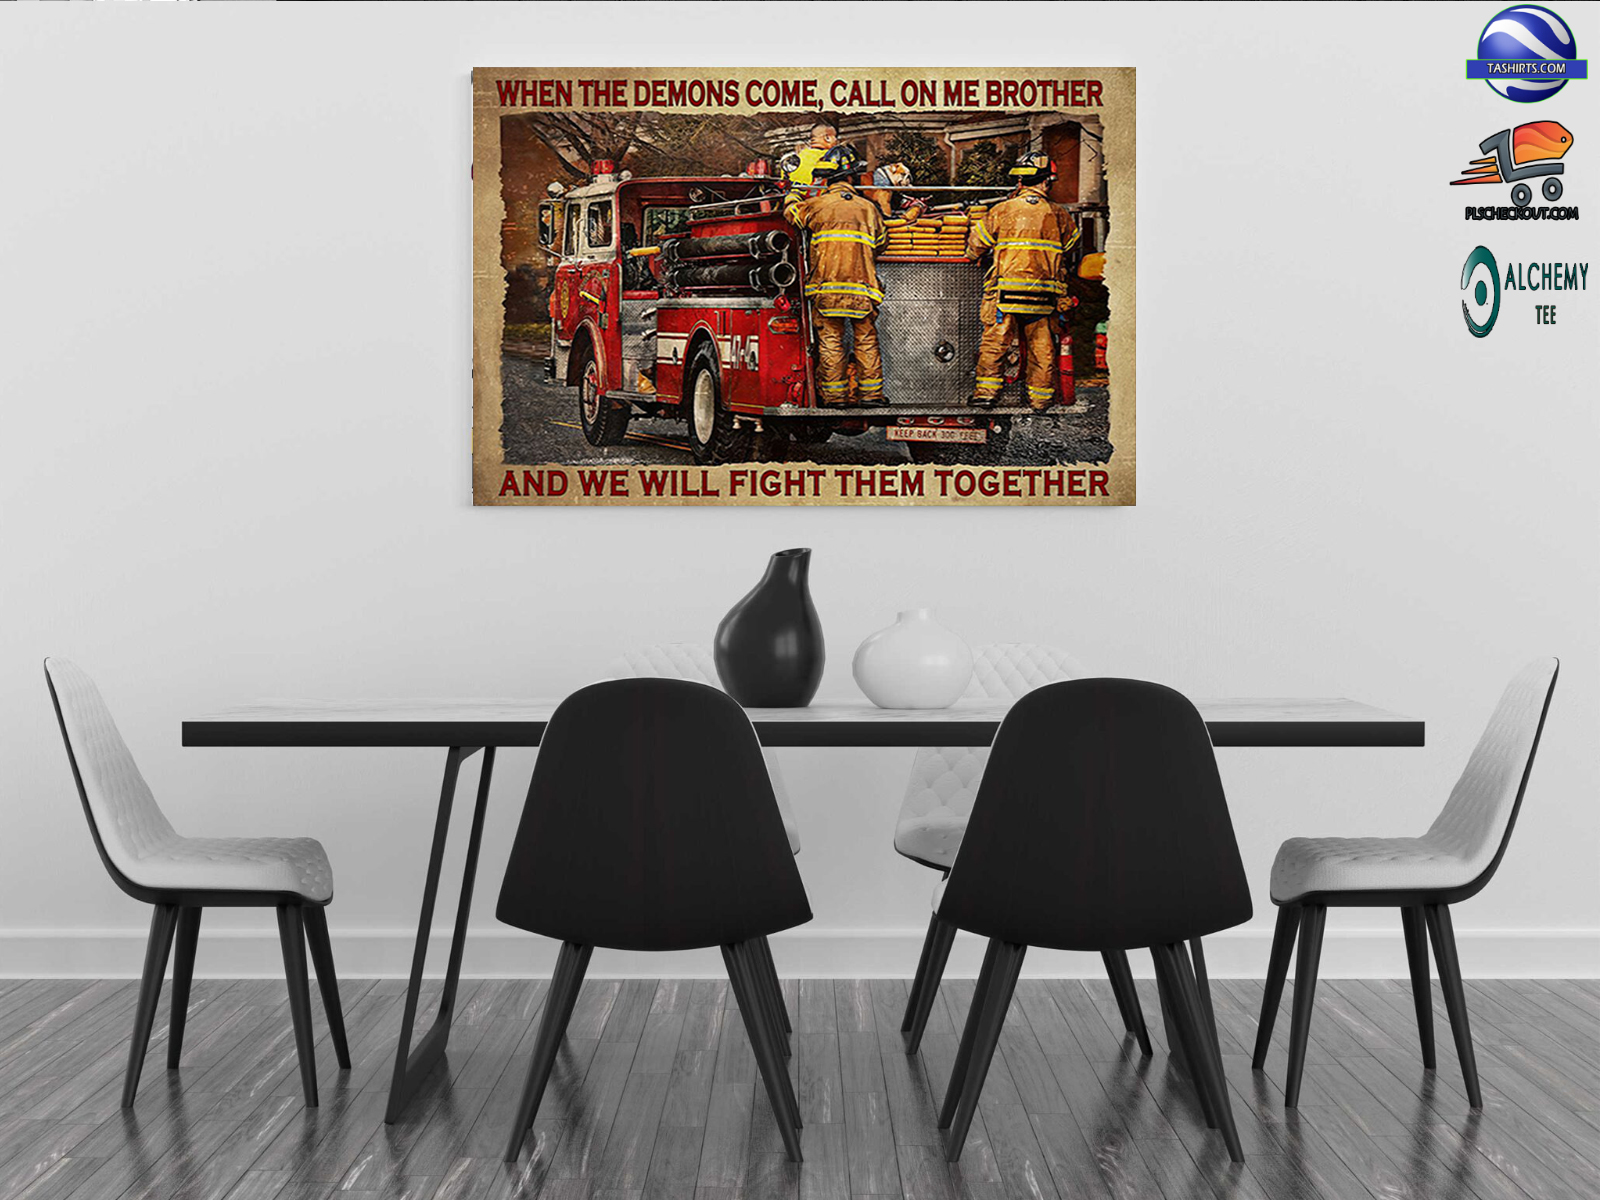 Firefighter when the demons come call on me brother and we will fight them together poster